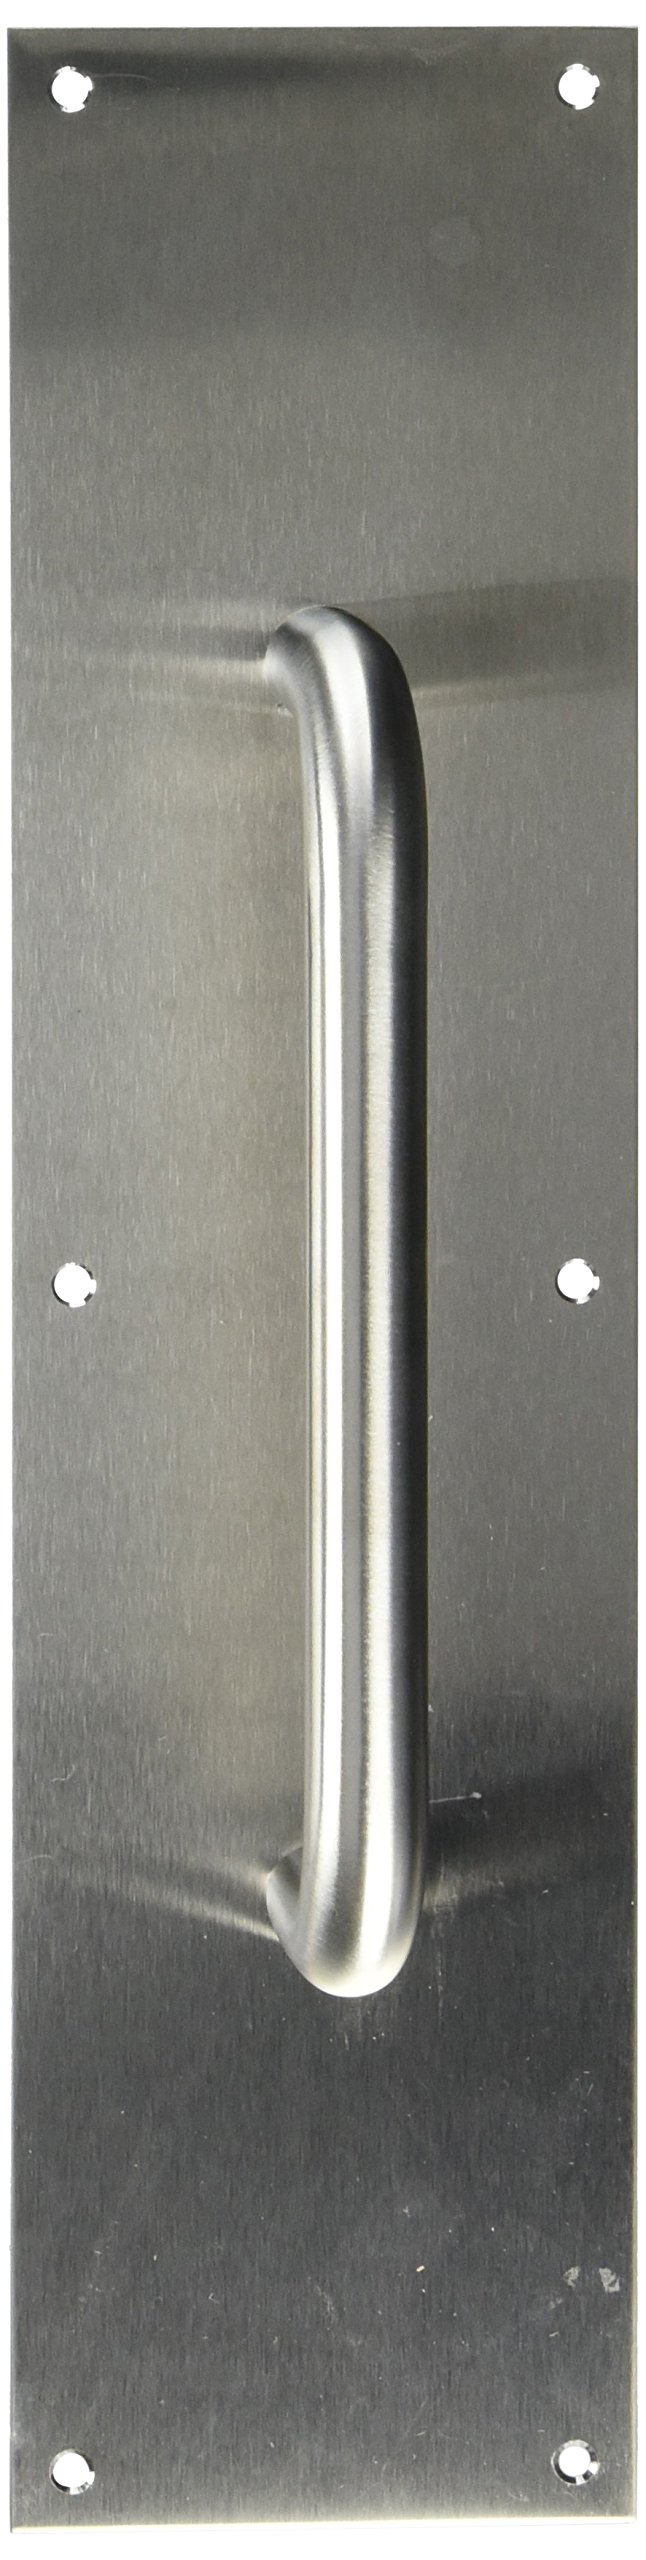 Deltana PPH4016U32D 4-Inch x 16-Inch Stainless Steel Pull Plate with Handle